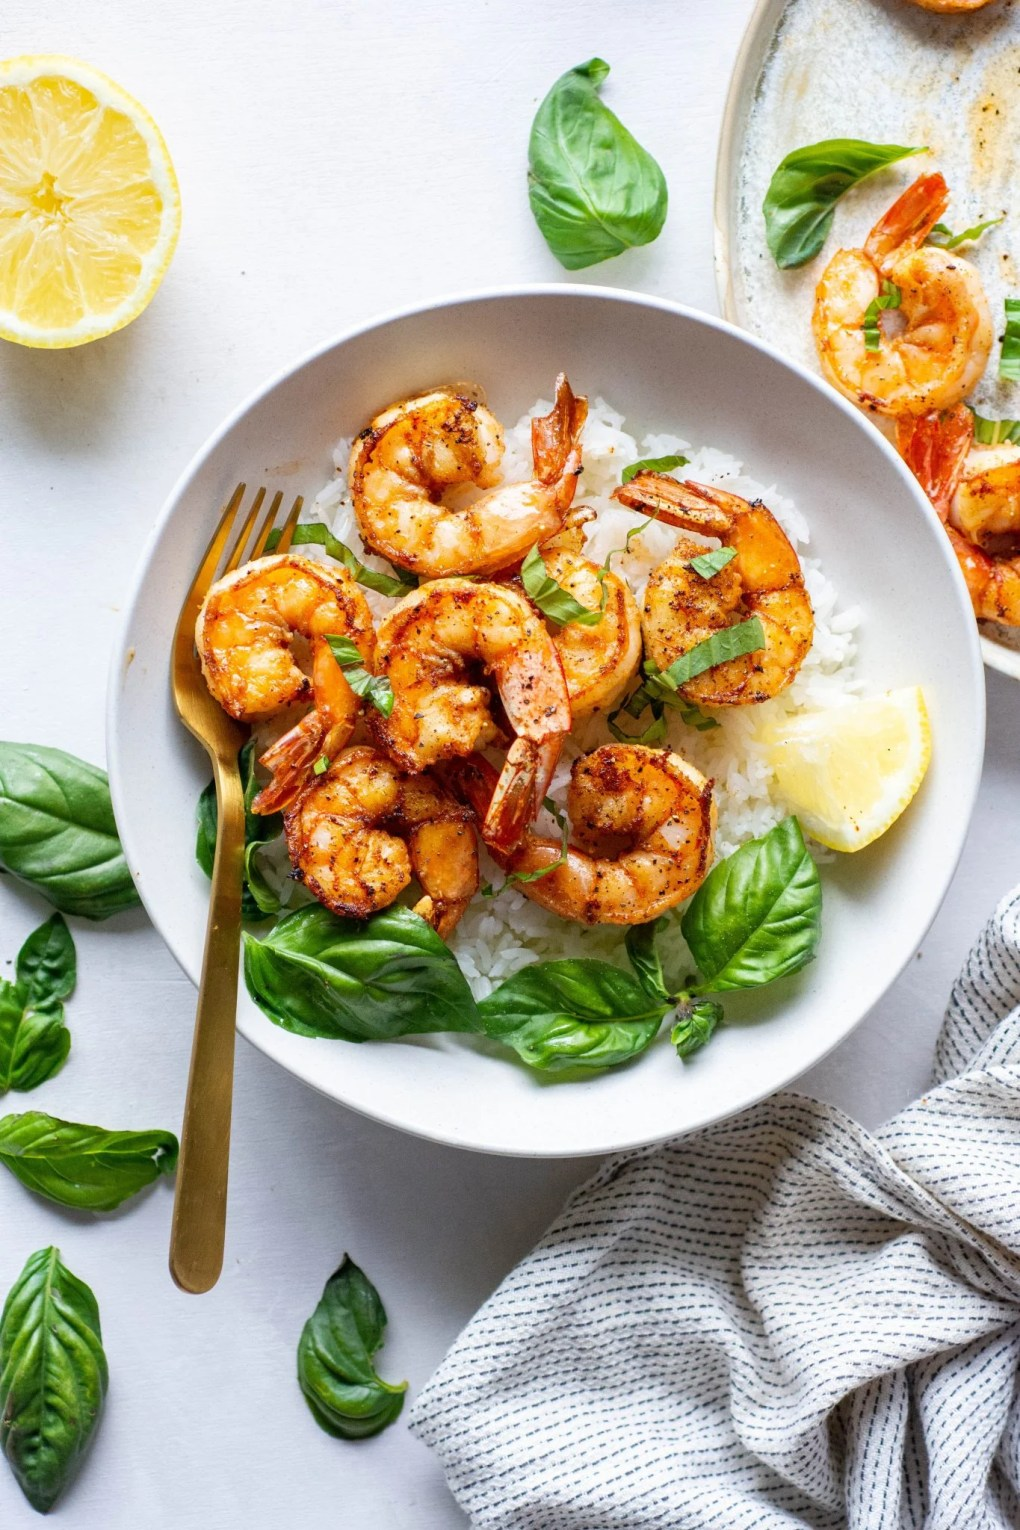 Large white bowl with white rice topped with seared shrimp with fresh basil and lemon wedges on a light background